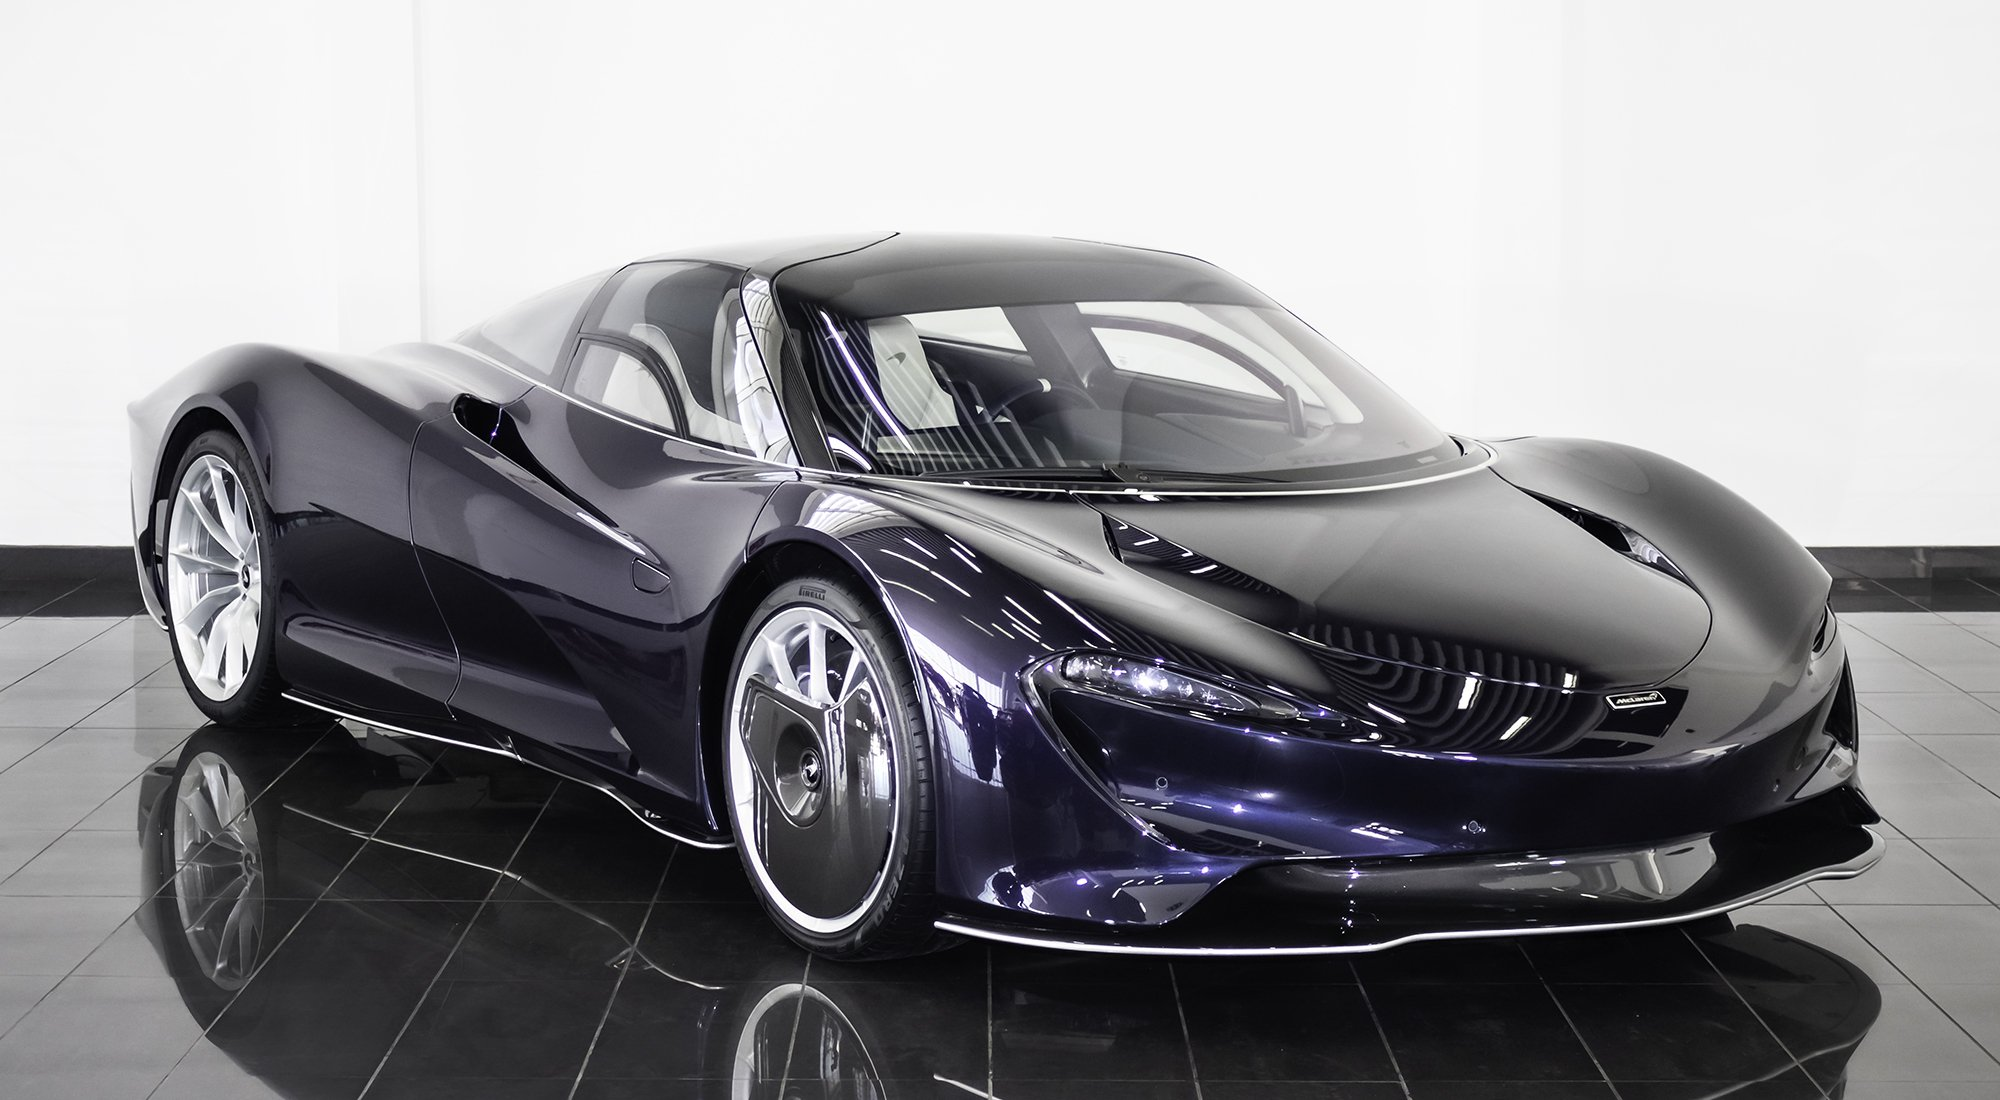 McLaren Speedtail for Sale in Dubai at $3.5 Million – 1 of 106 Worldwide